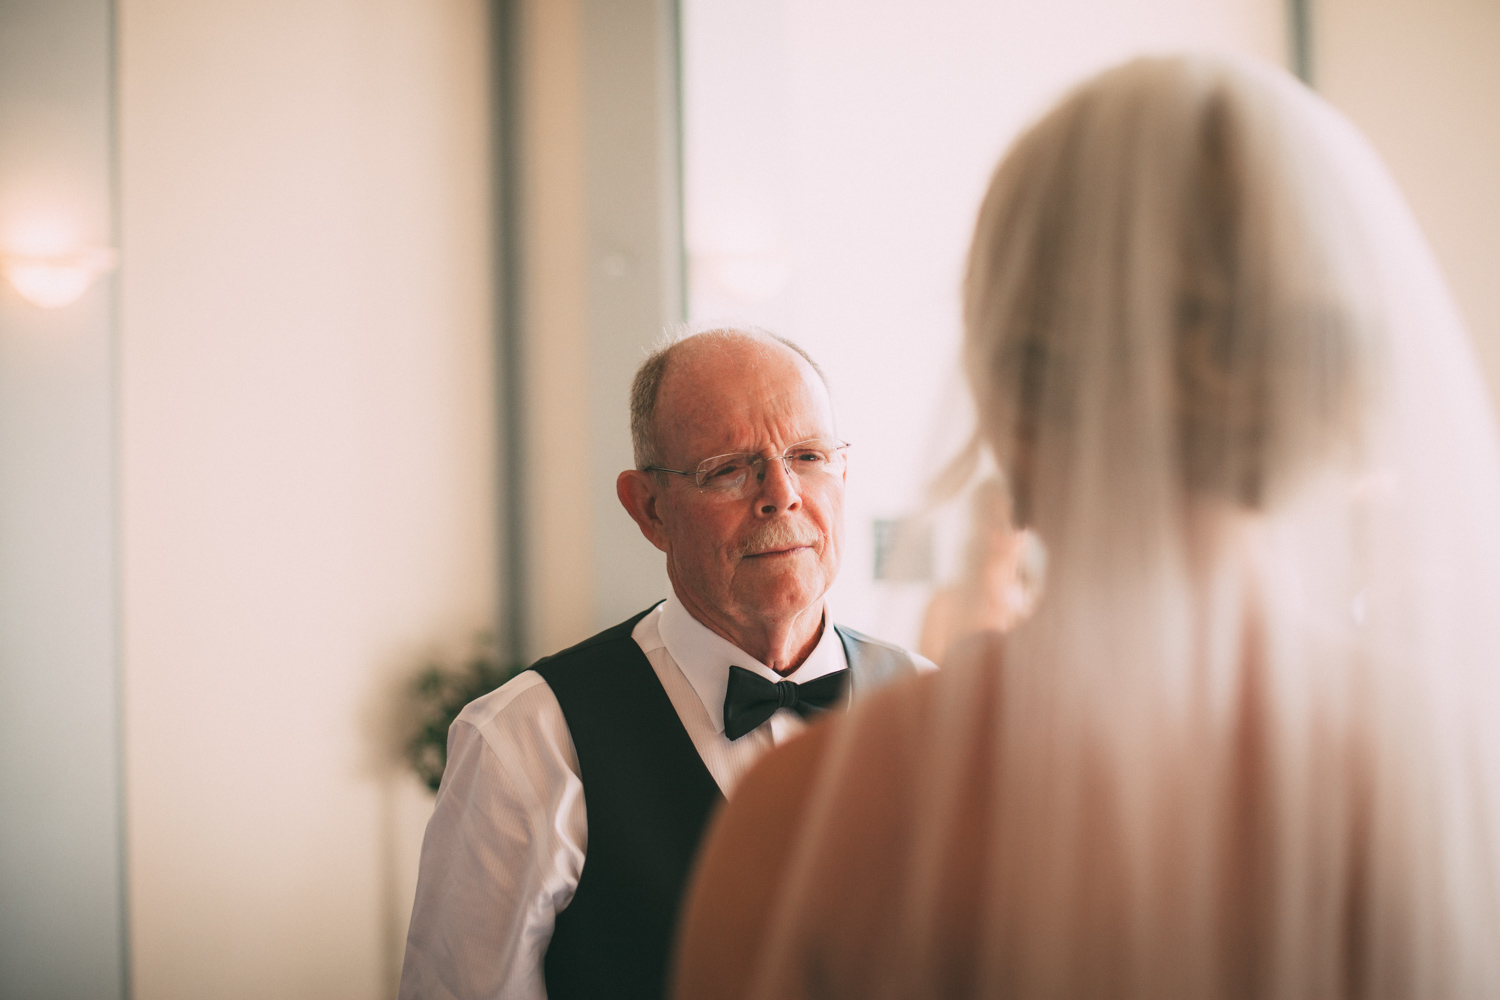 The father of the bride see her for the first time on the wedding day